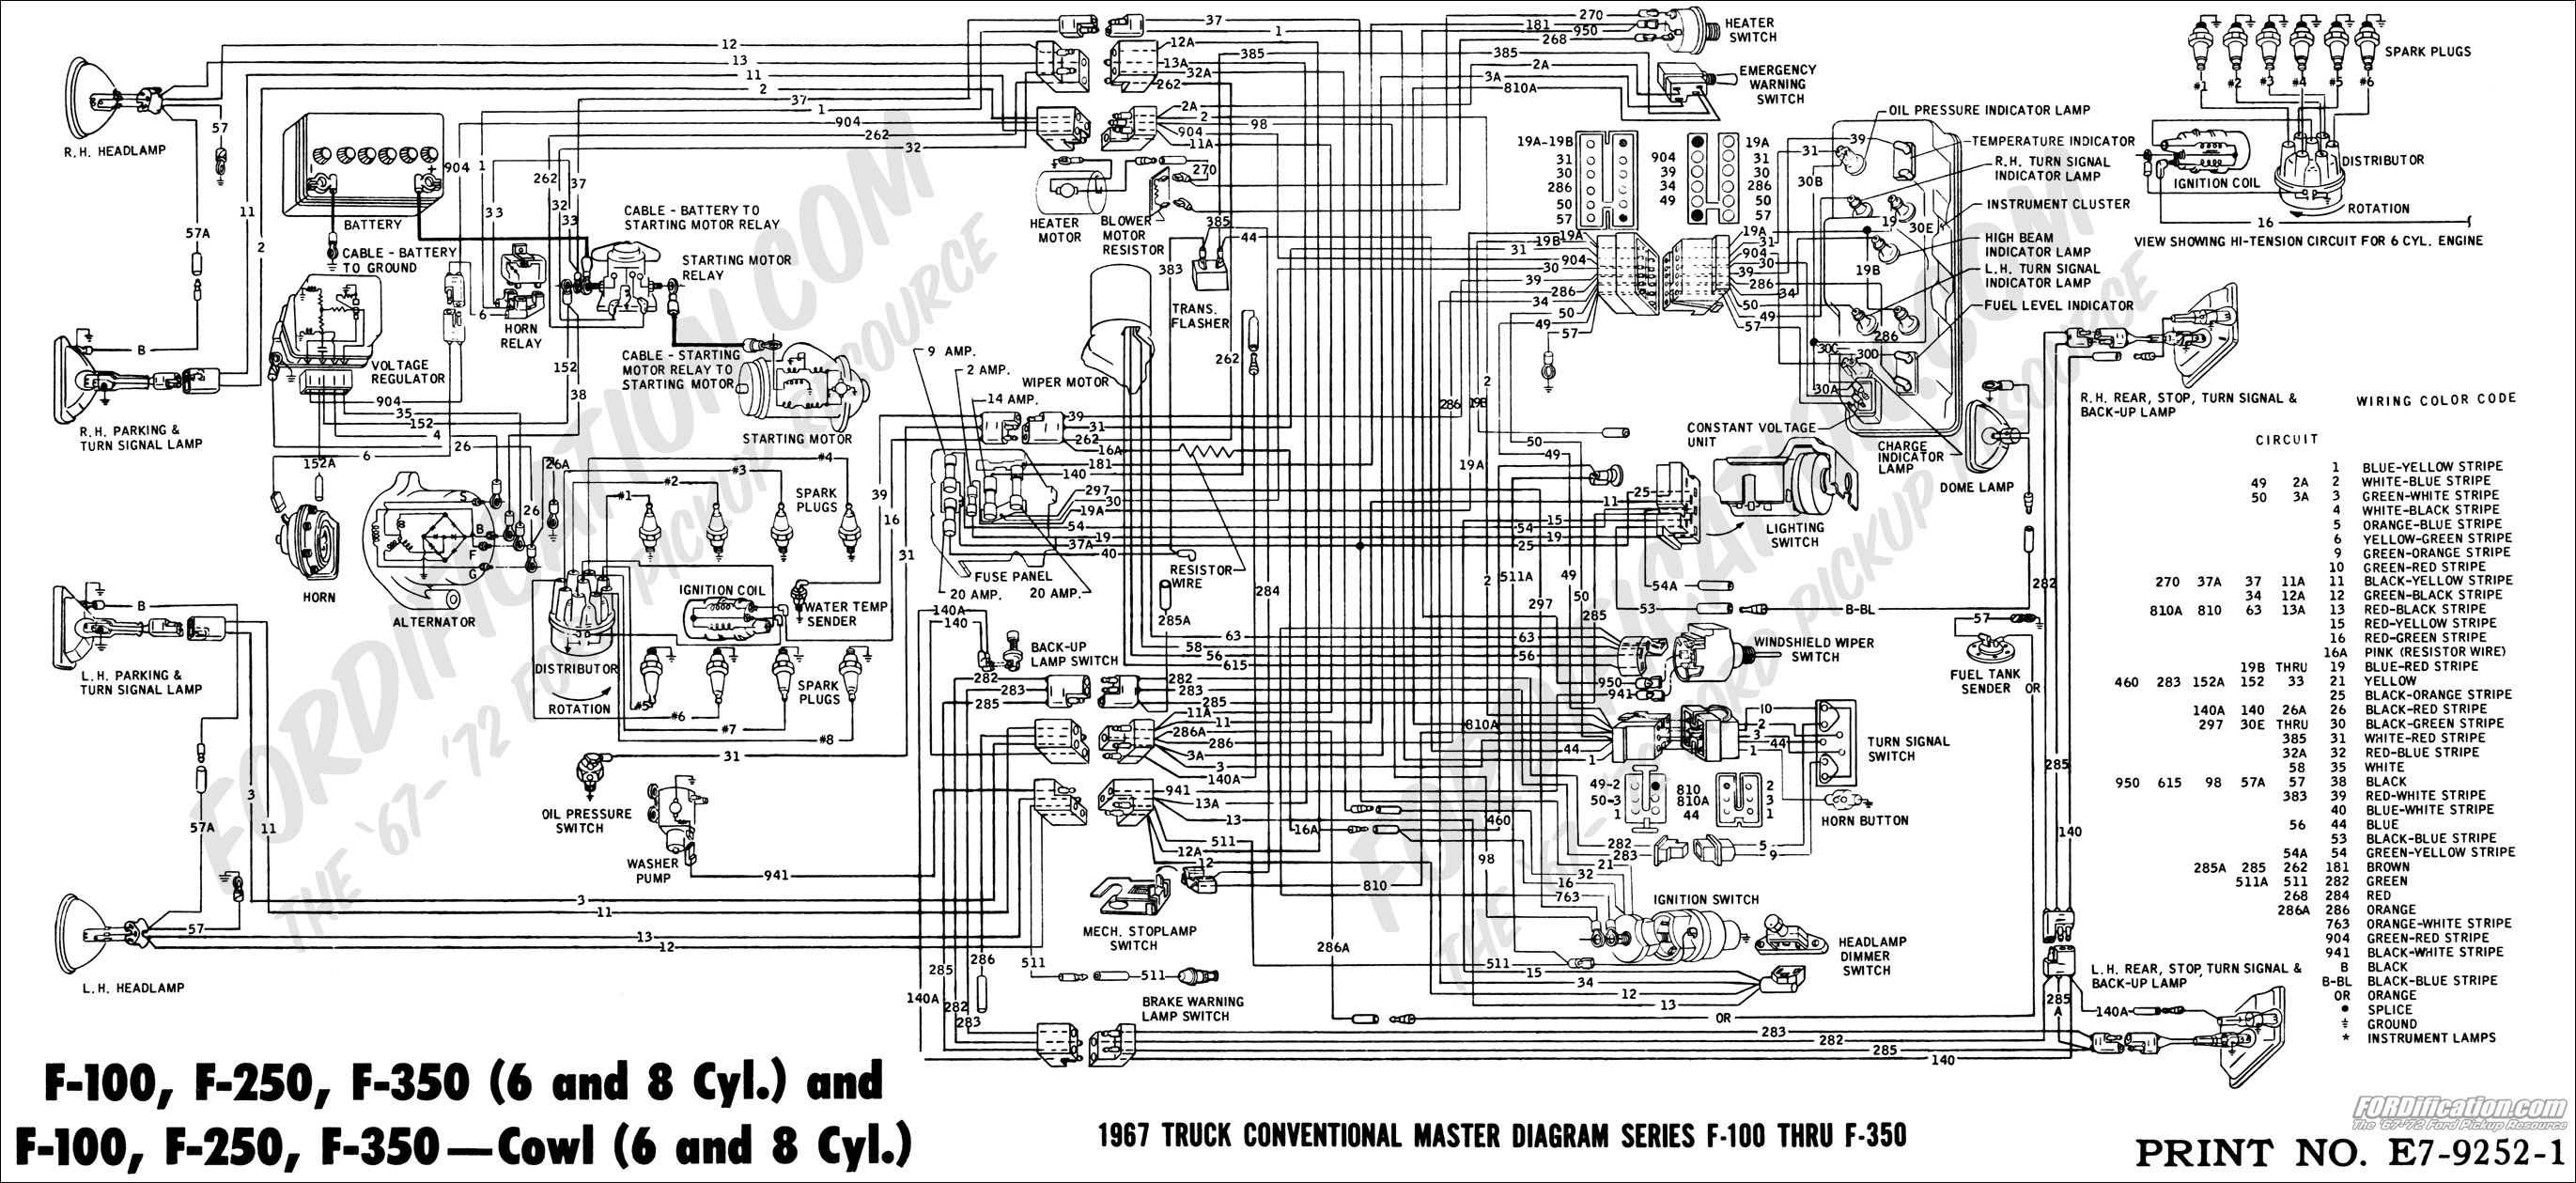 1993 ford f 150 starter wiring diagram detailed schematics diagram rh  keyplusrubber com 2002 F150 Fuse Box Diagram 2005 f150 5.4 heater hose  diagram